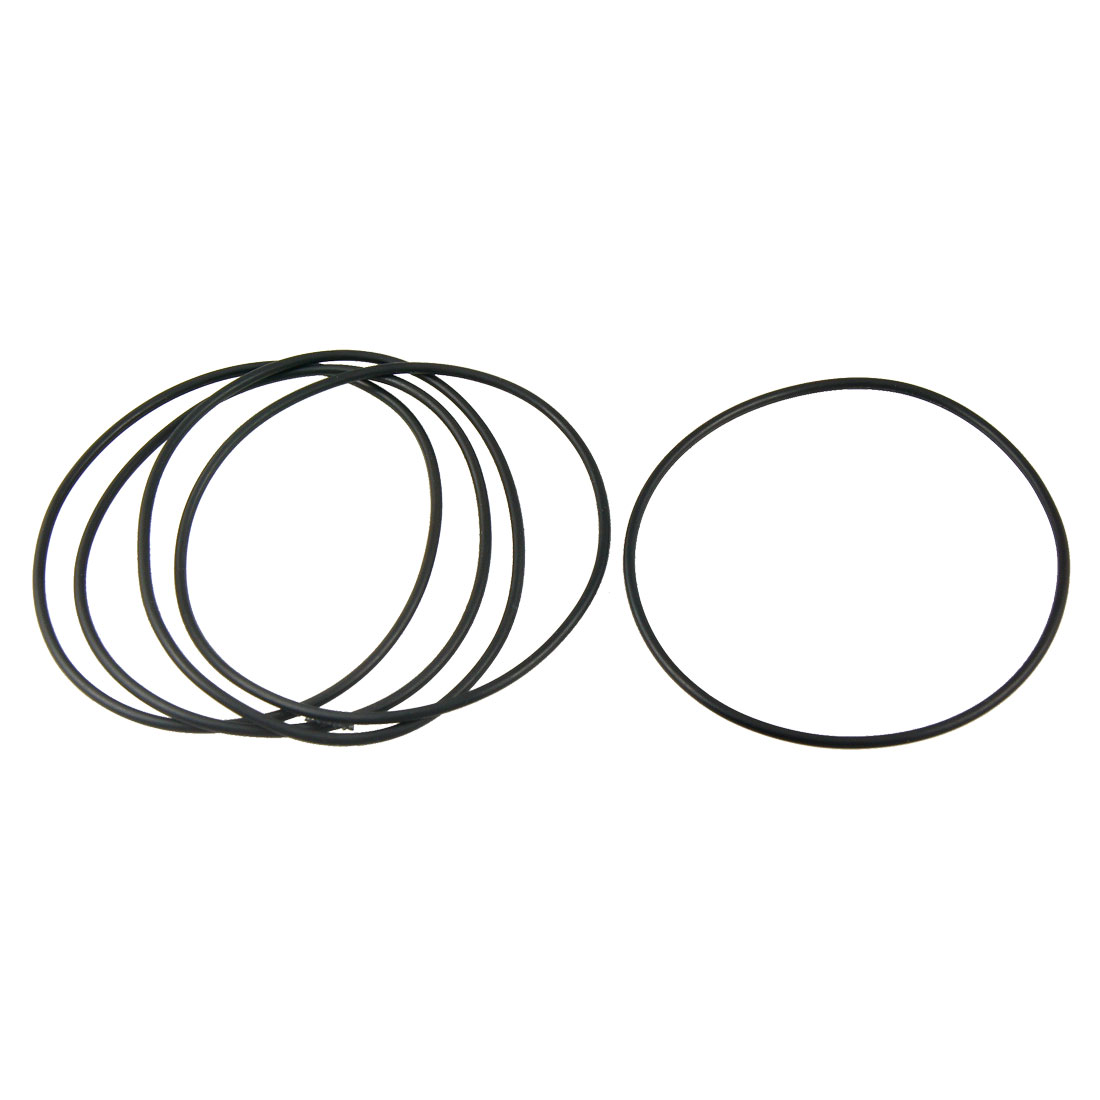 5 Pcs 95.3mm x 90mm x 2.65mm Flexible Rubber O Ring Seal Washer Black